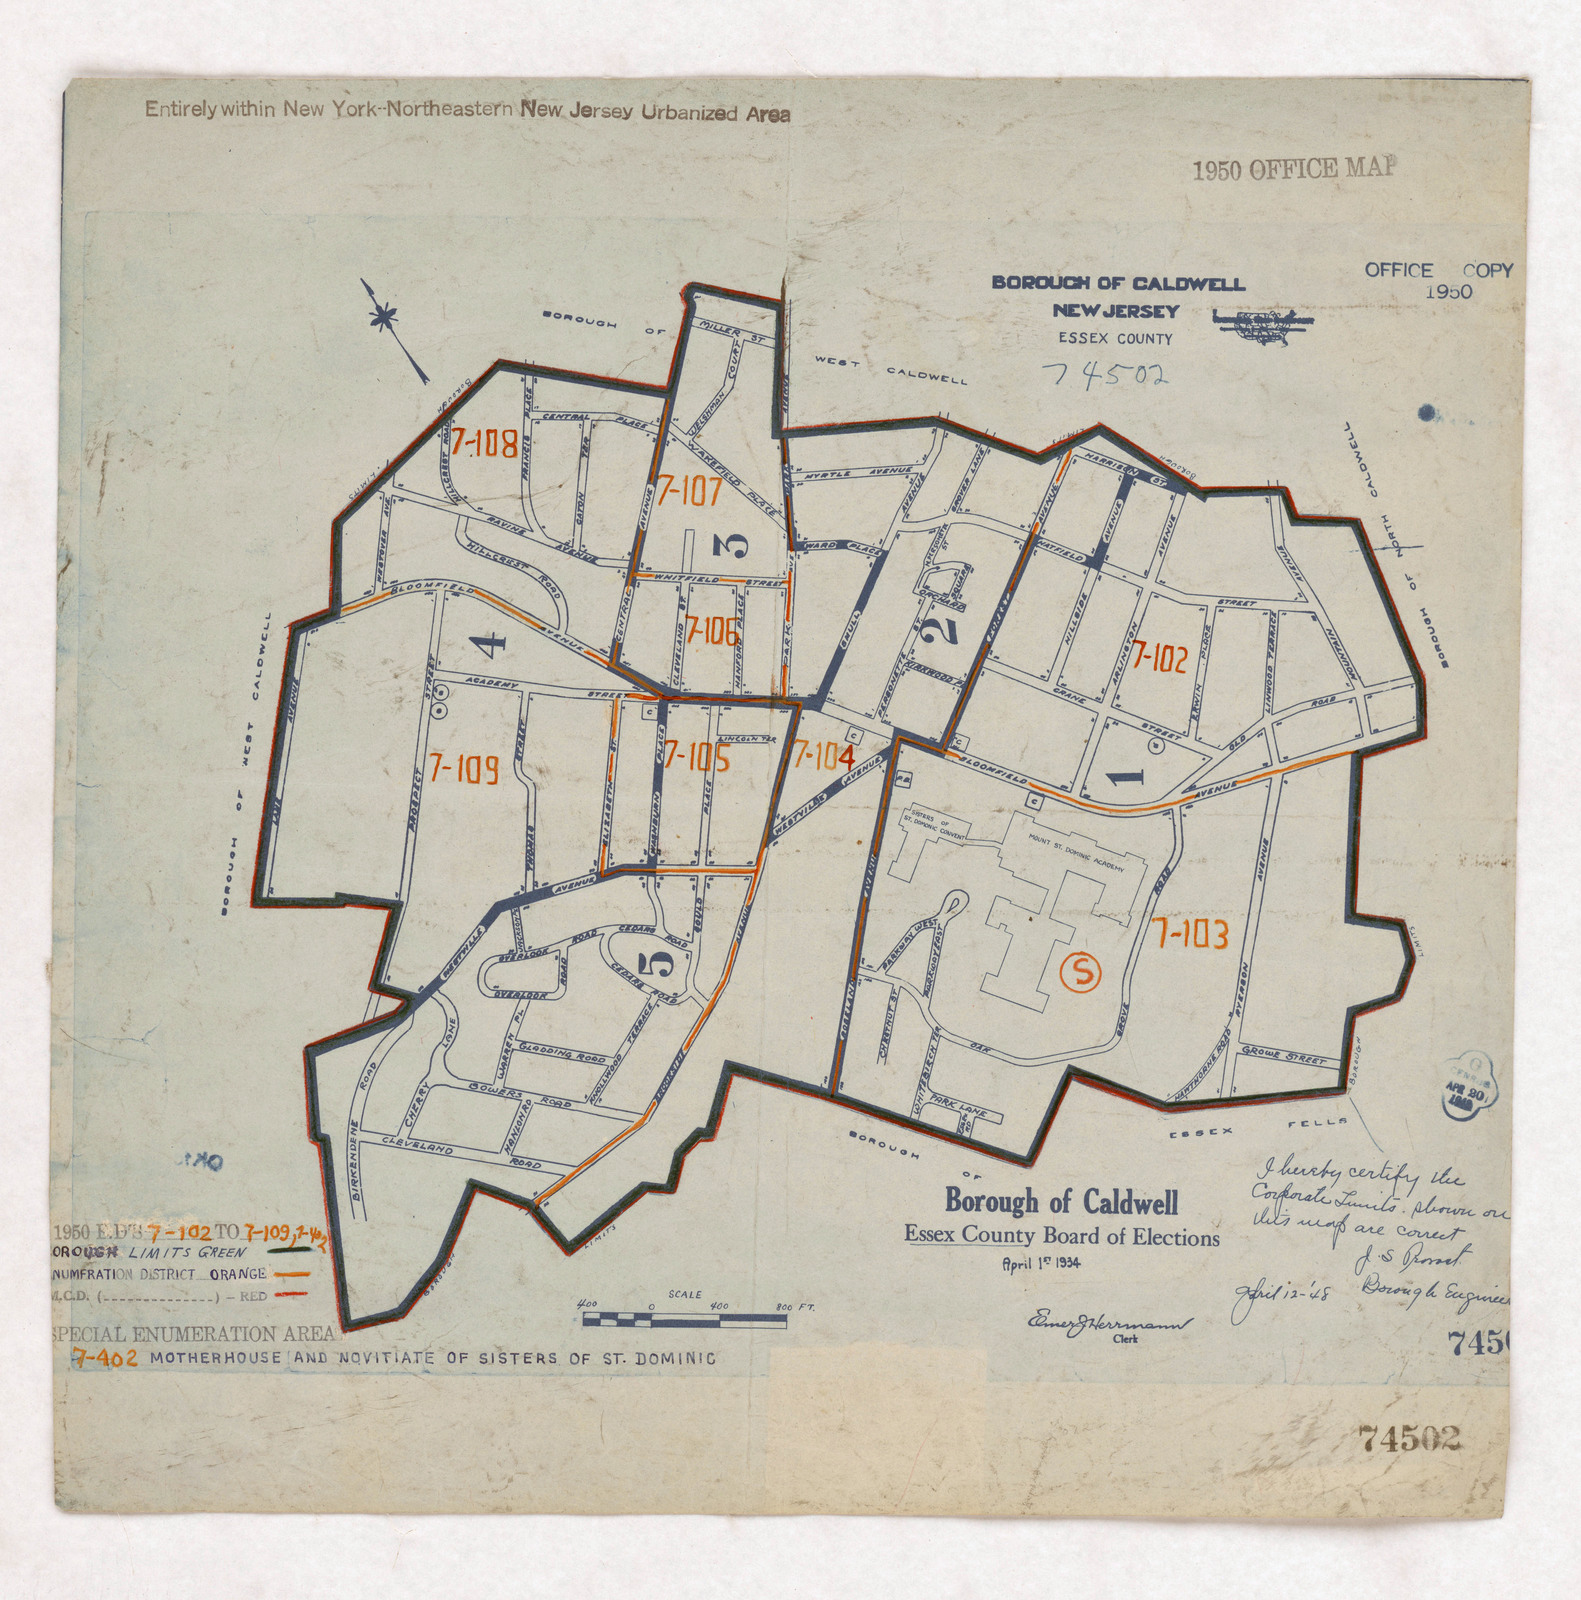 Caldwell New Jersey Map.1950 Census Enumeration District Maps New Jersey Nj Essex